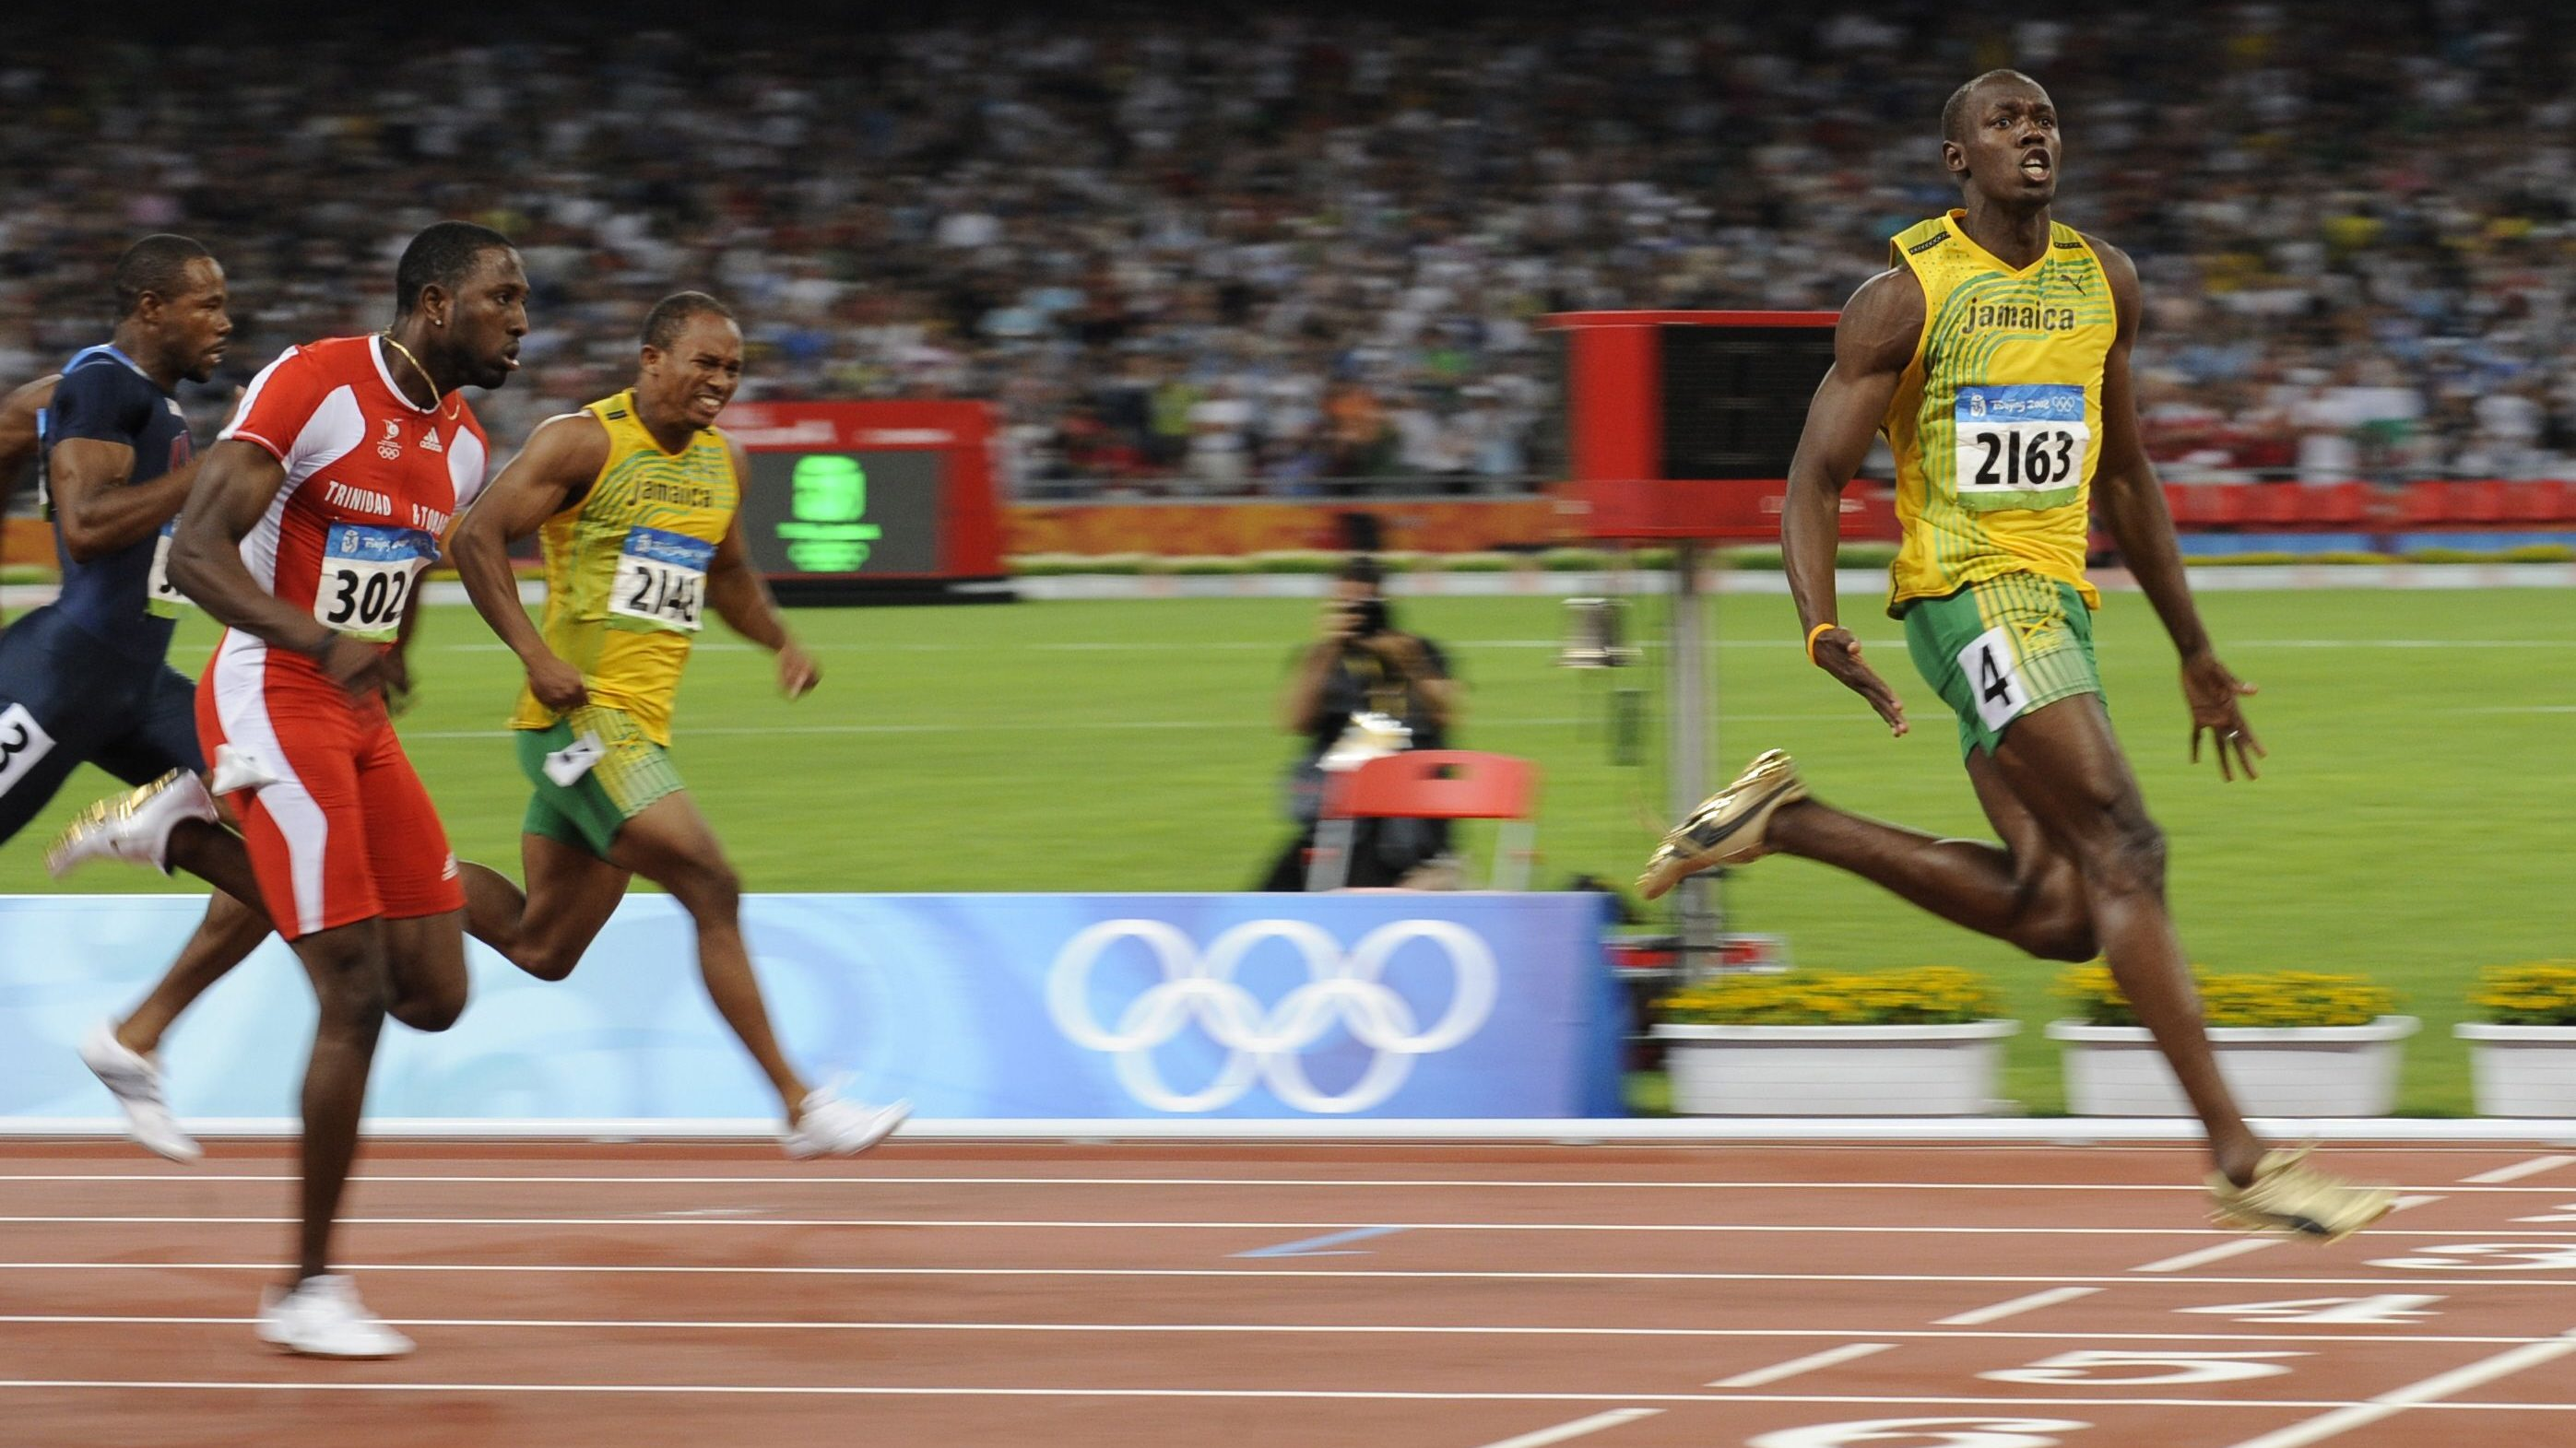 FILES-ATHLETICS-WORLD-JAM-BOLT